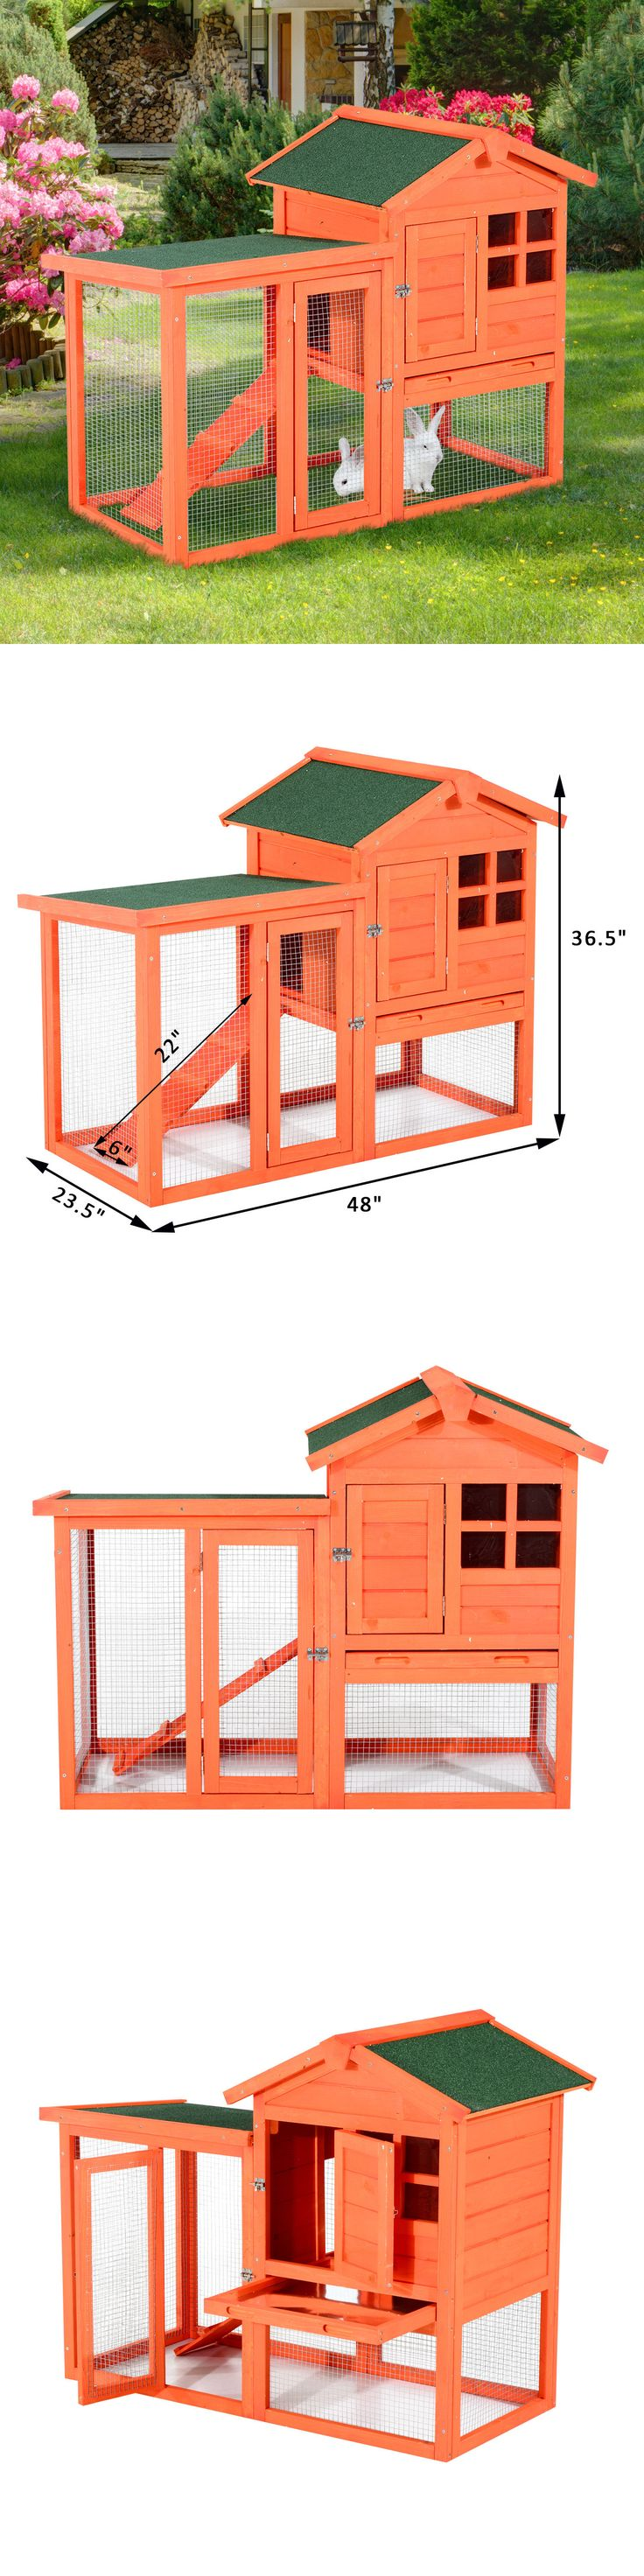 Cages and Enclosure 63108: Pawhut Deluxe Rabbit Hutch Chicken Hoop Wooden House Cage Animal Habitat W/ Run BUY IT NOW ONLY: $119.99